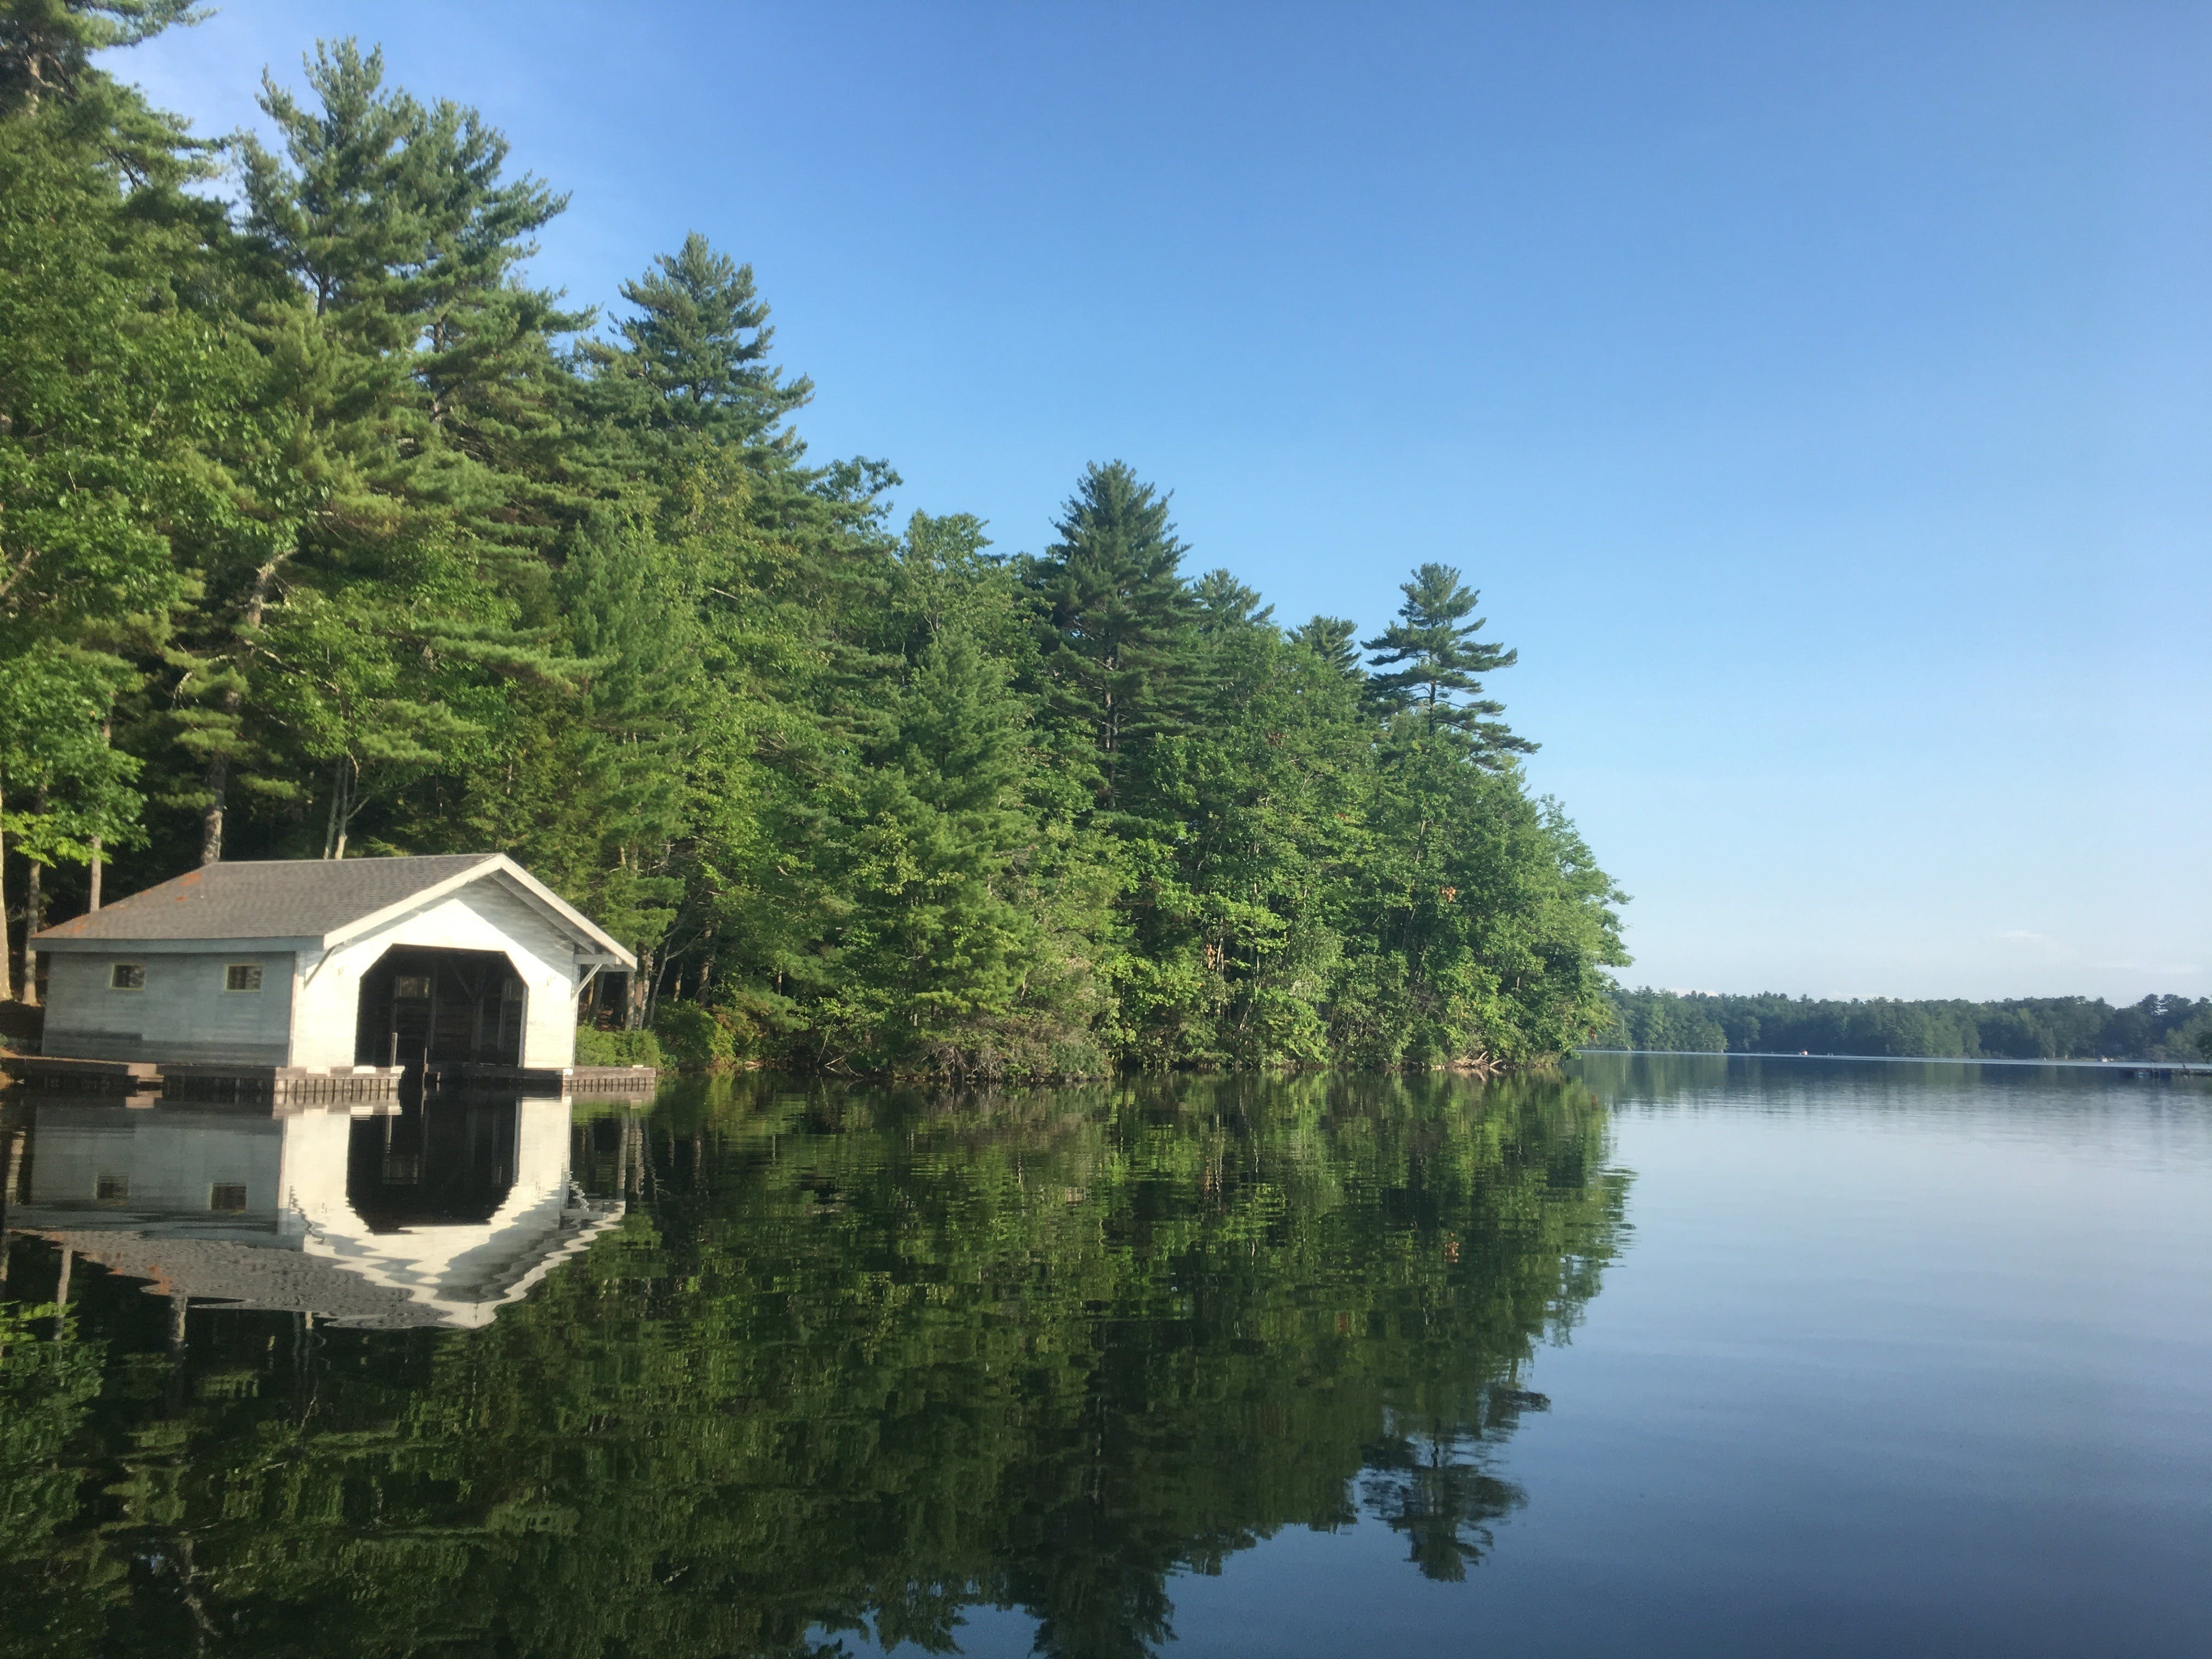 Free stock photo of boat house, boathouse, calm lake, calm waters